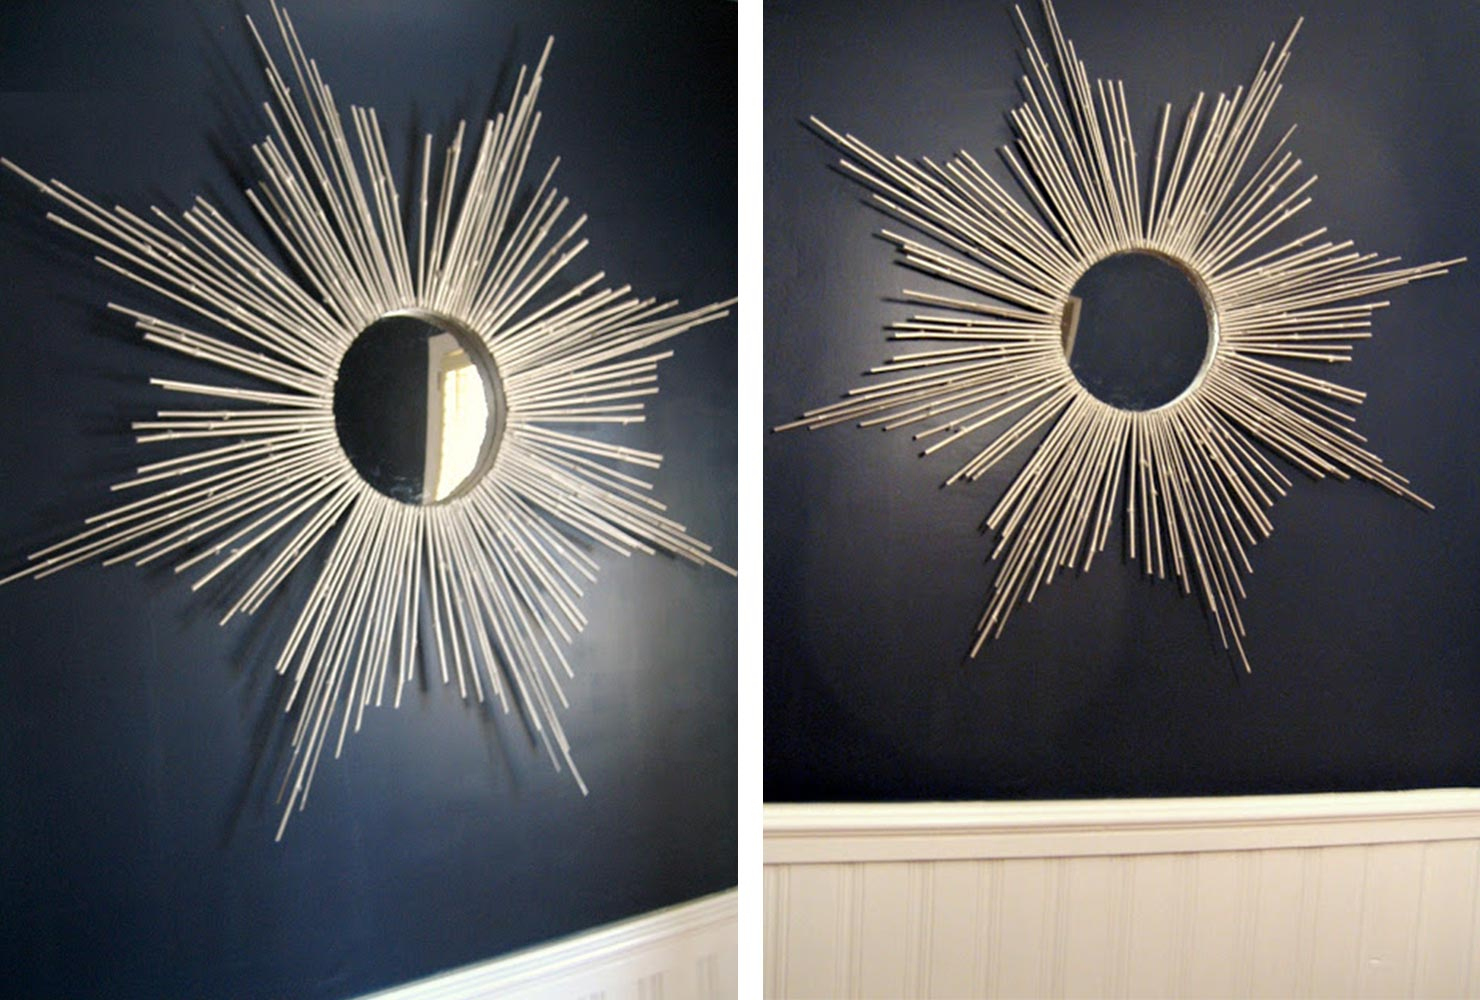 25 Unique Diy Wall Art Ideas (With Printables) | Shutterfly In Nature Metal Sun Wall Decor (Photo 11 of 30)